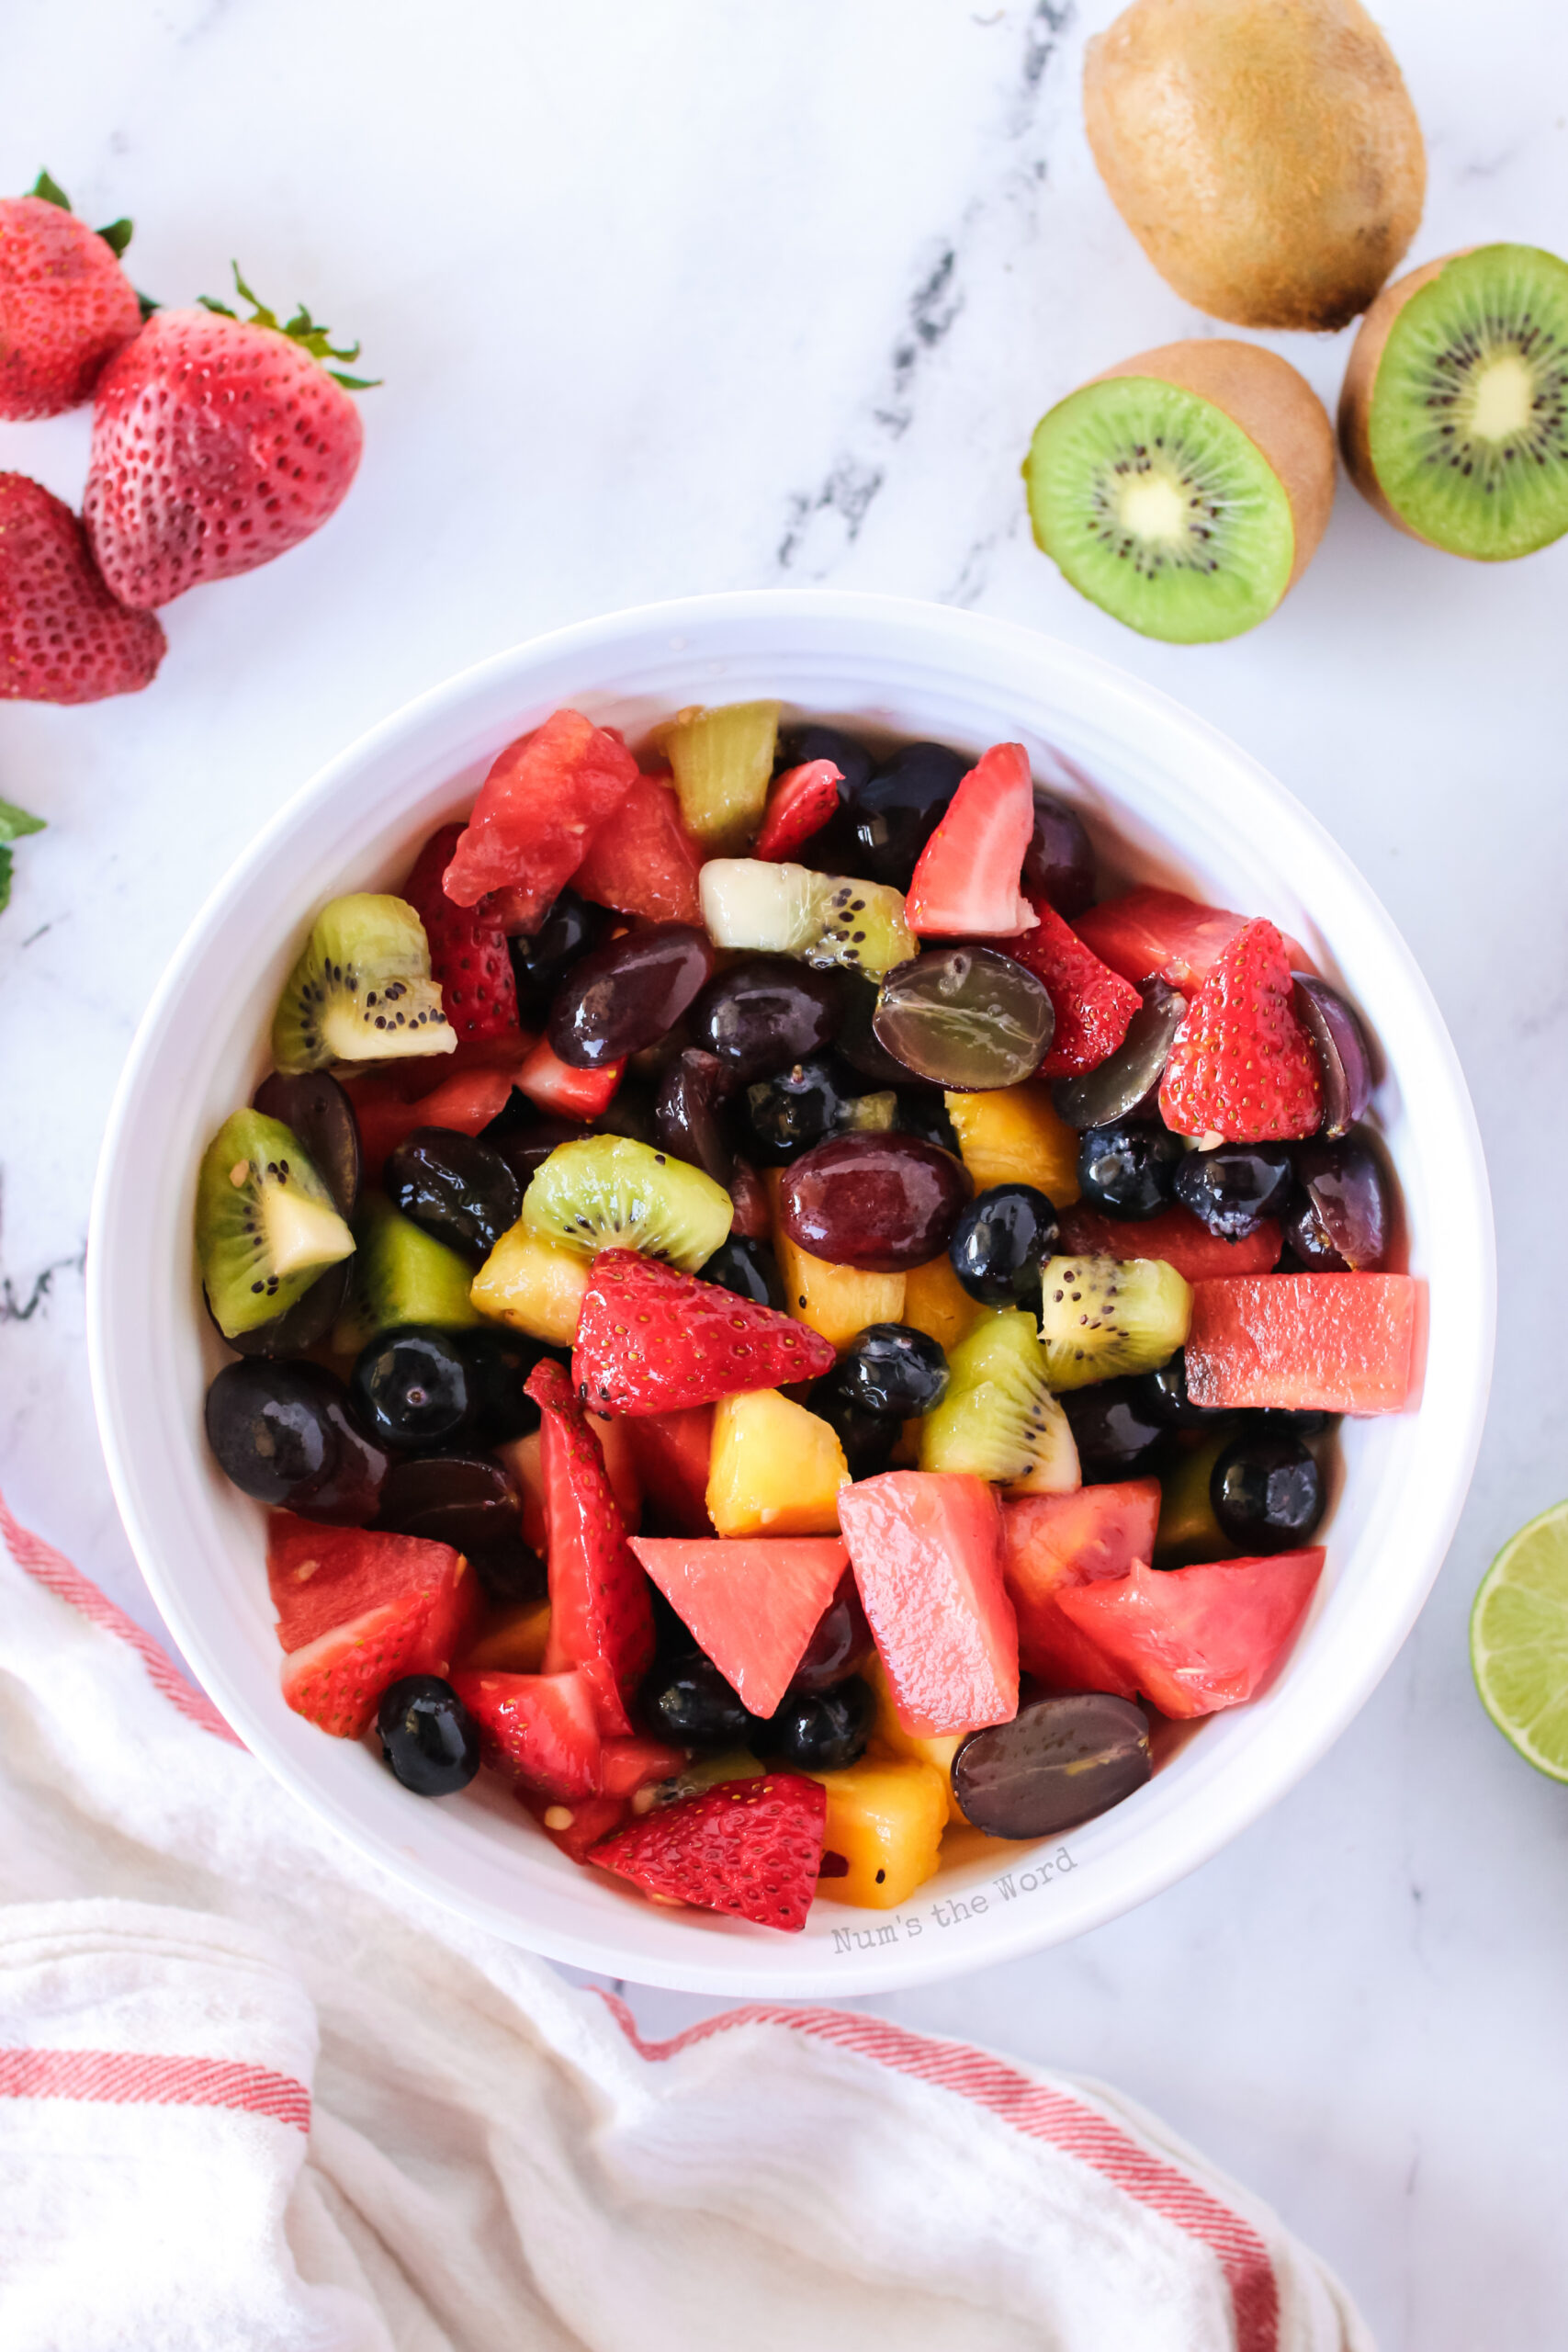 zoomed out image of fruit salad in a bowl.